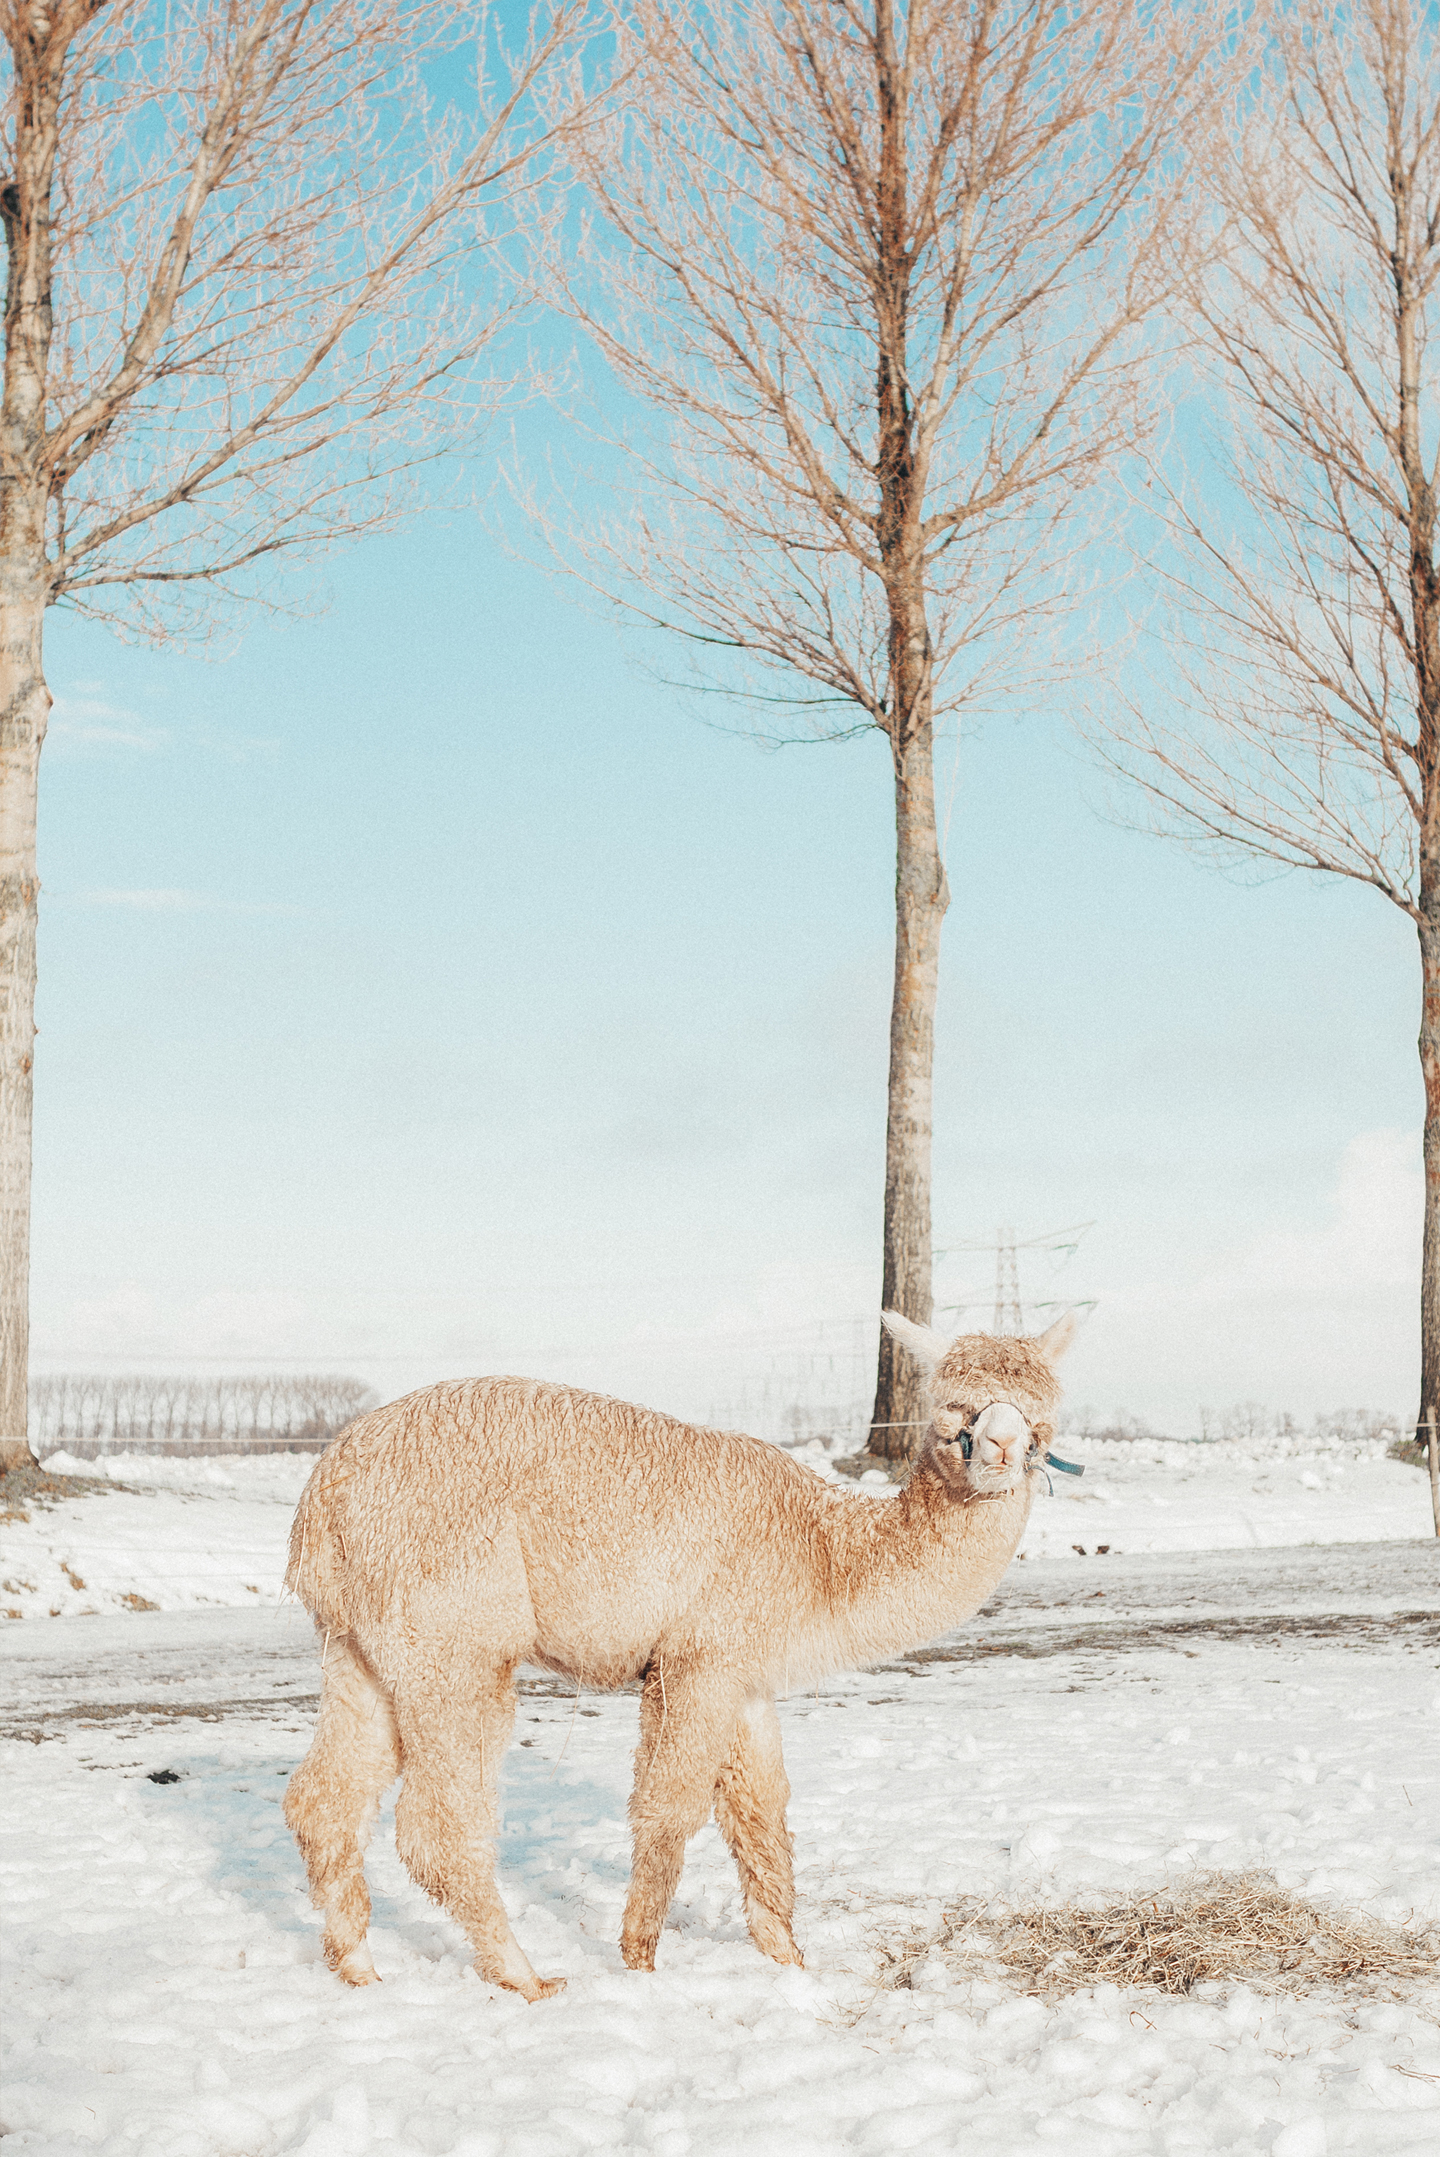 alpaca in the snow winter